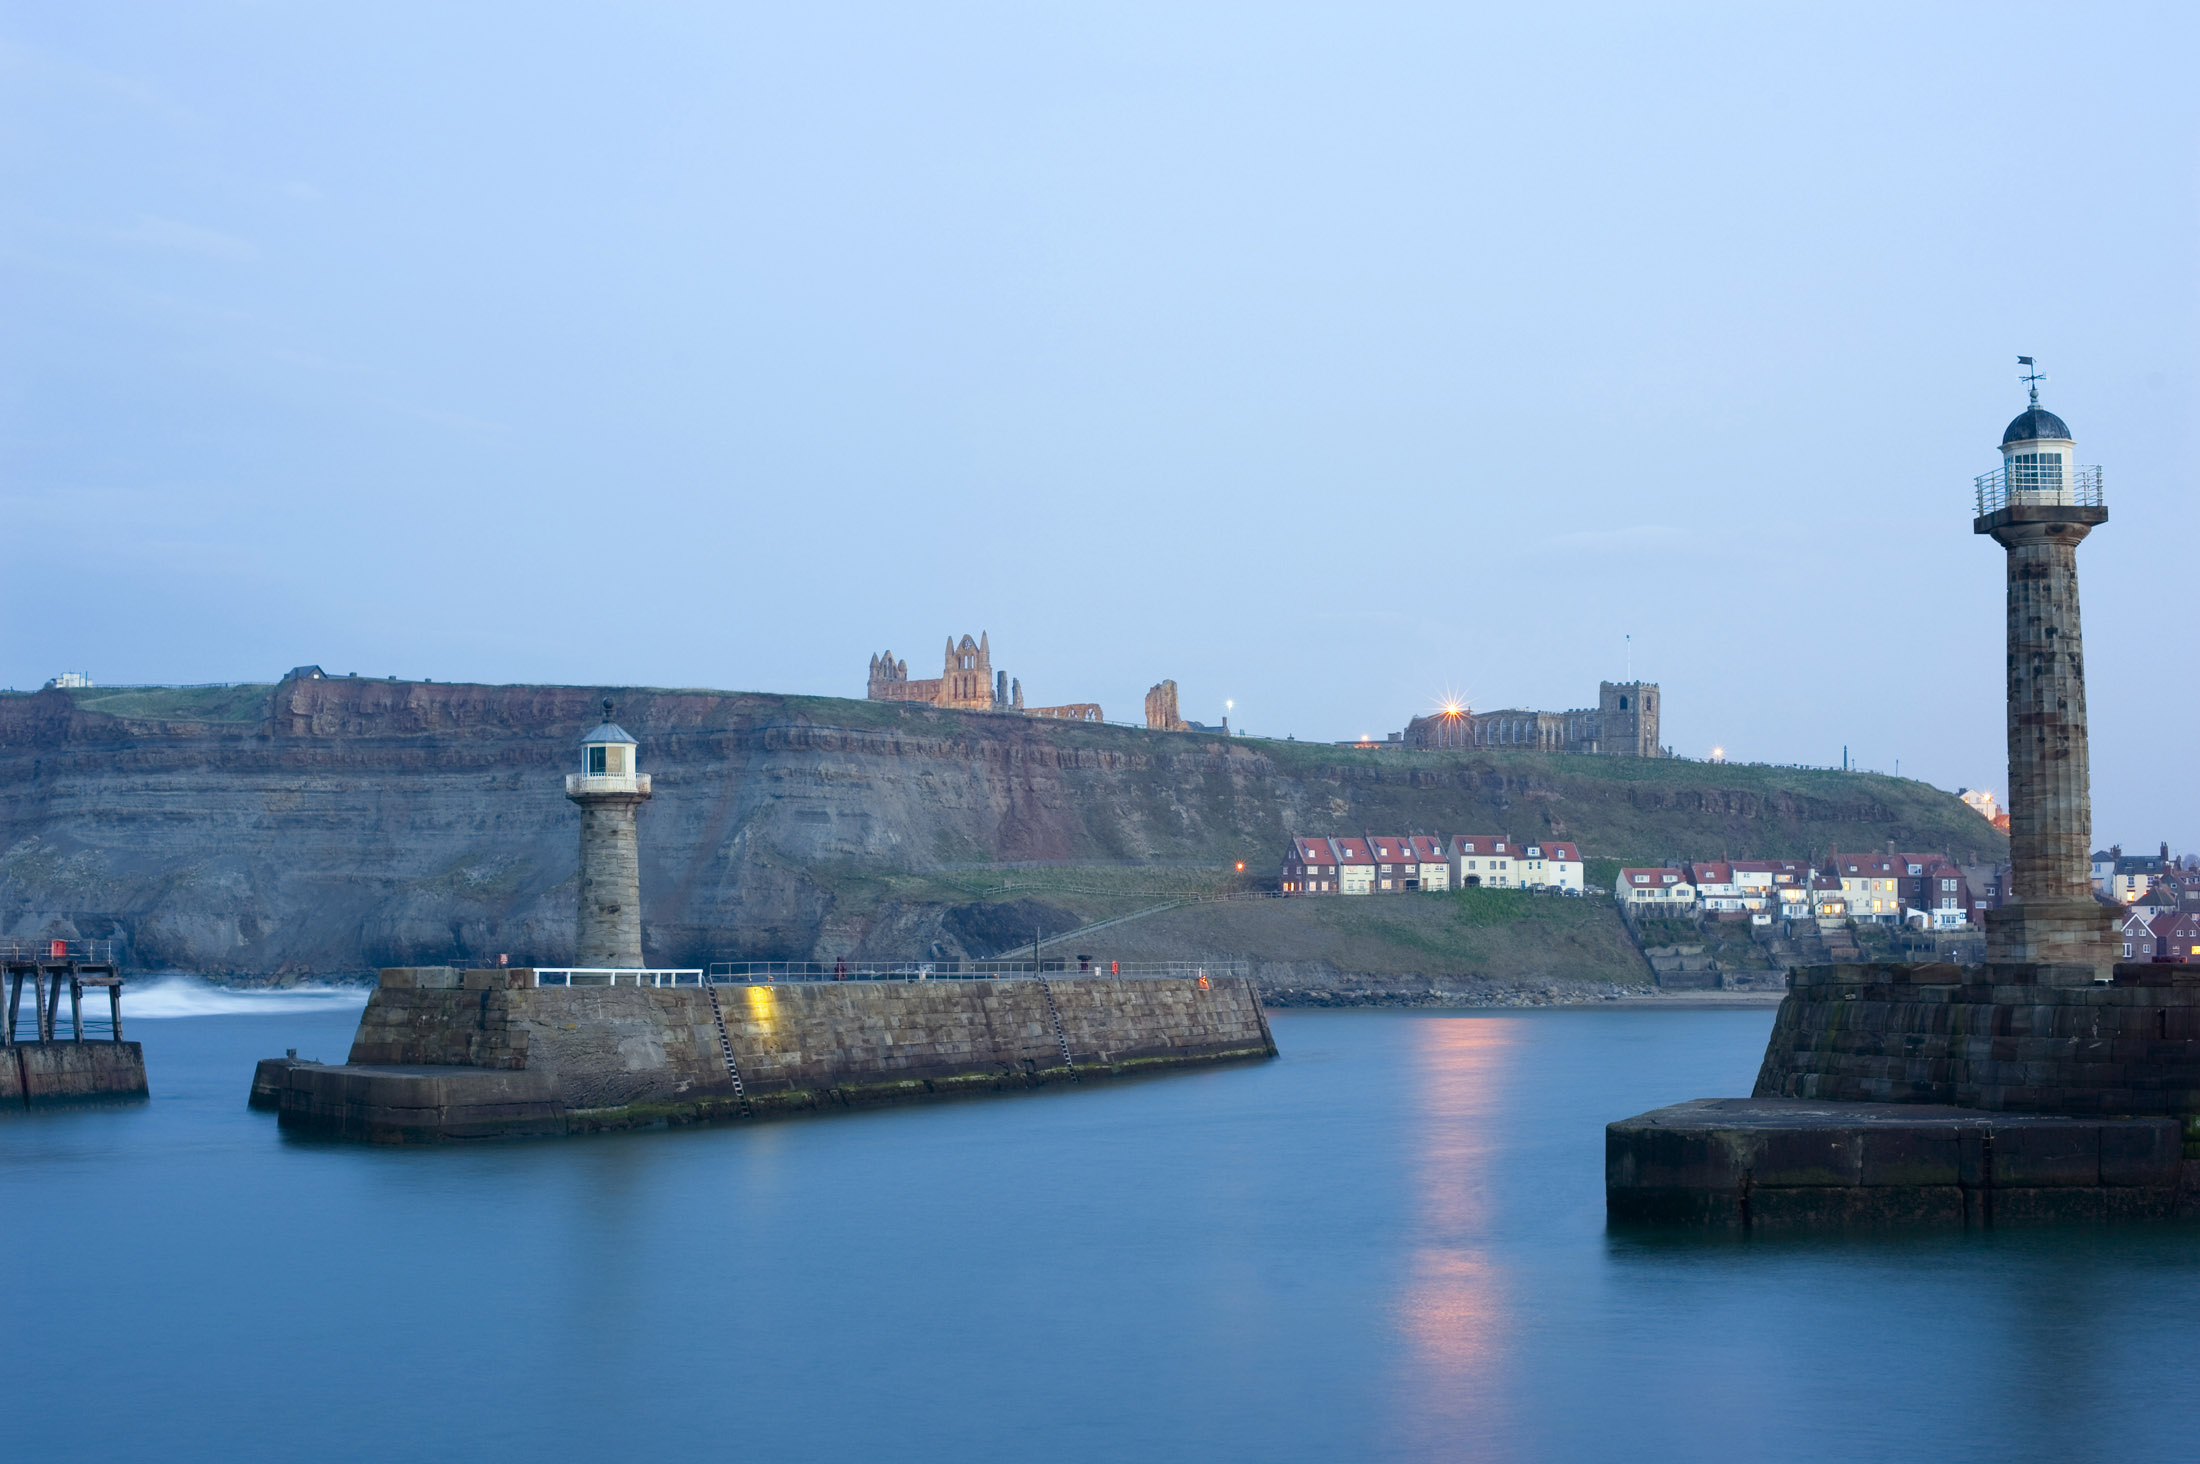 a still dusk over whitby lower harbour, with the piers, lighhouses, fishermans cottages and the abbey on the hill in view